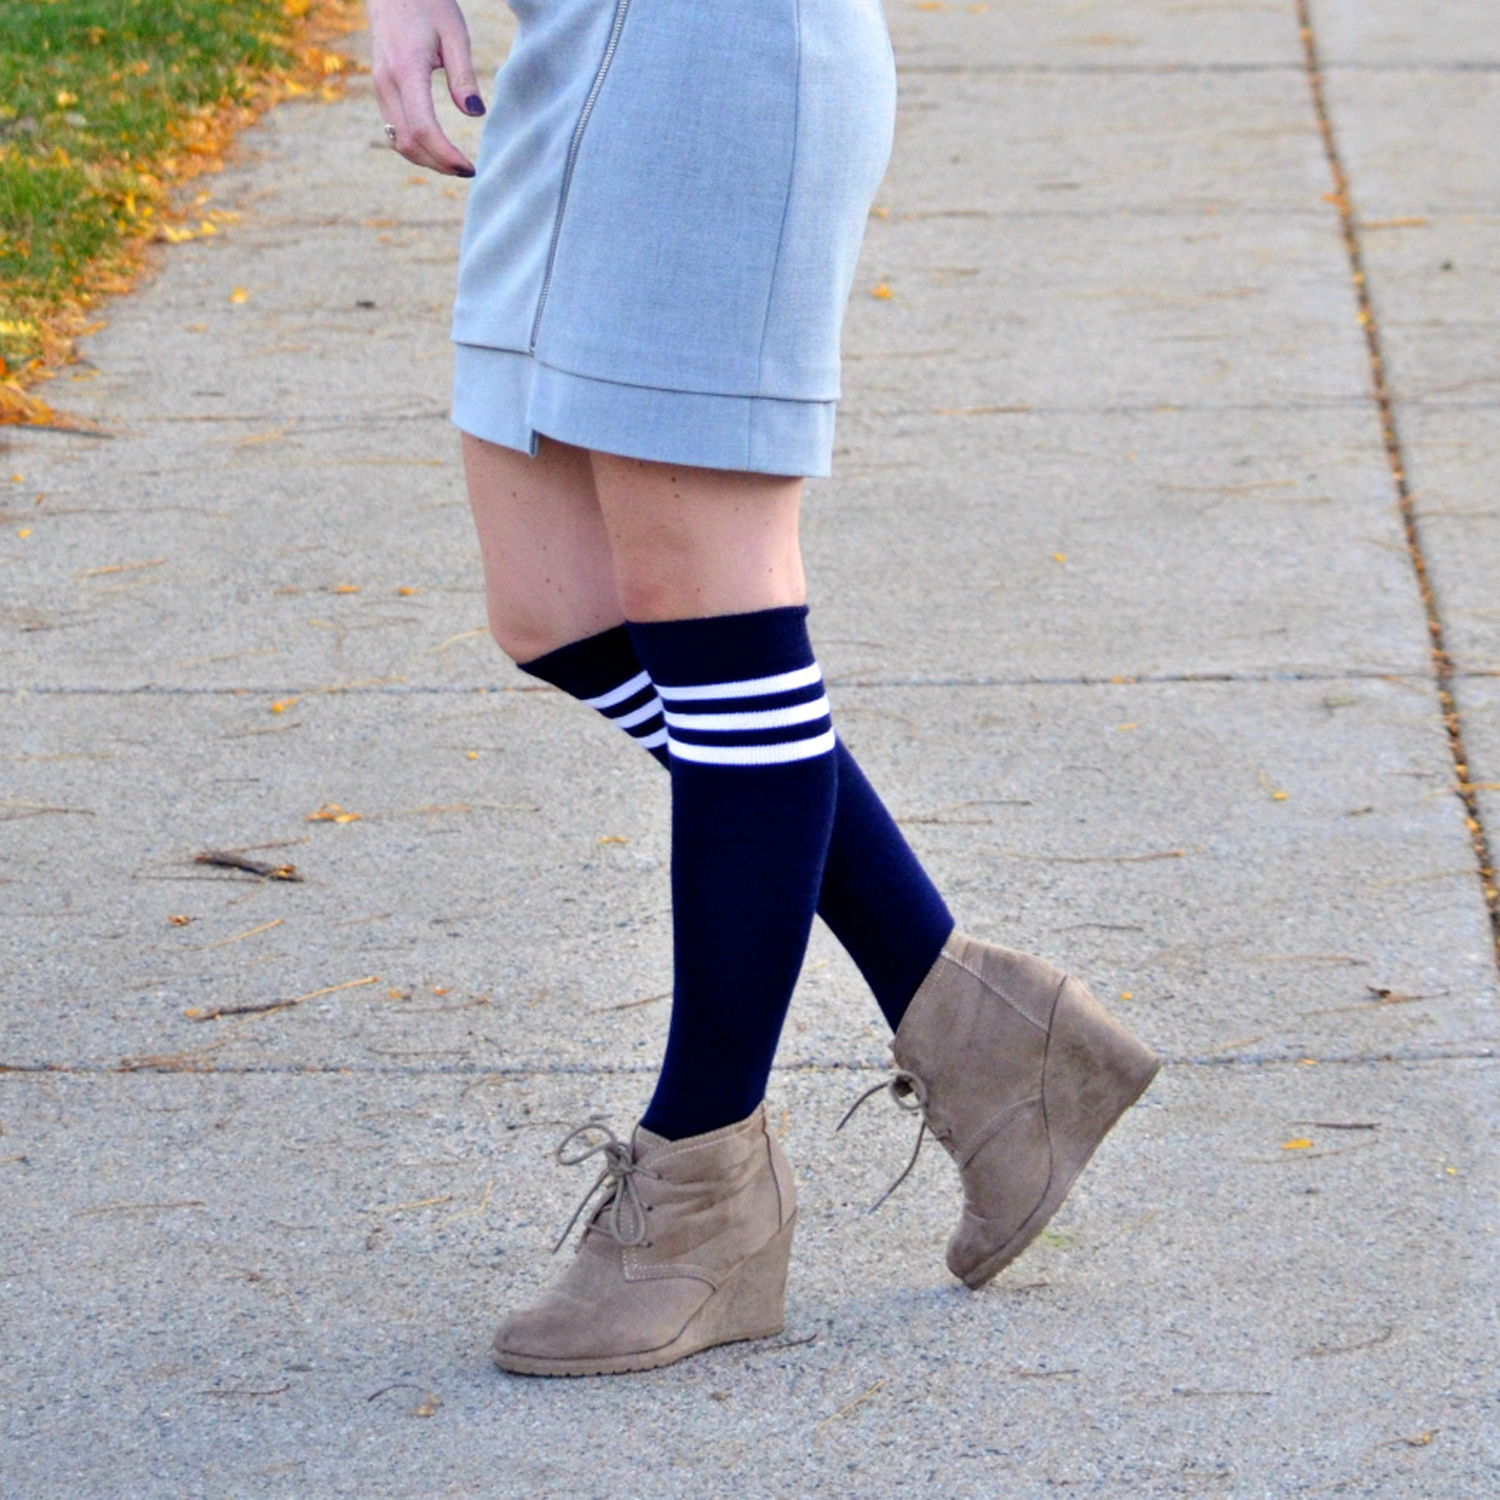 wedge shoes with striped tube socks